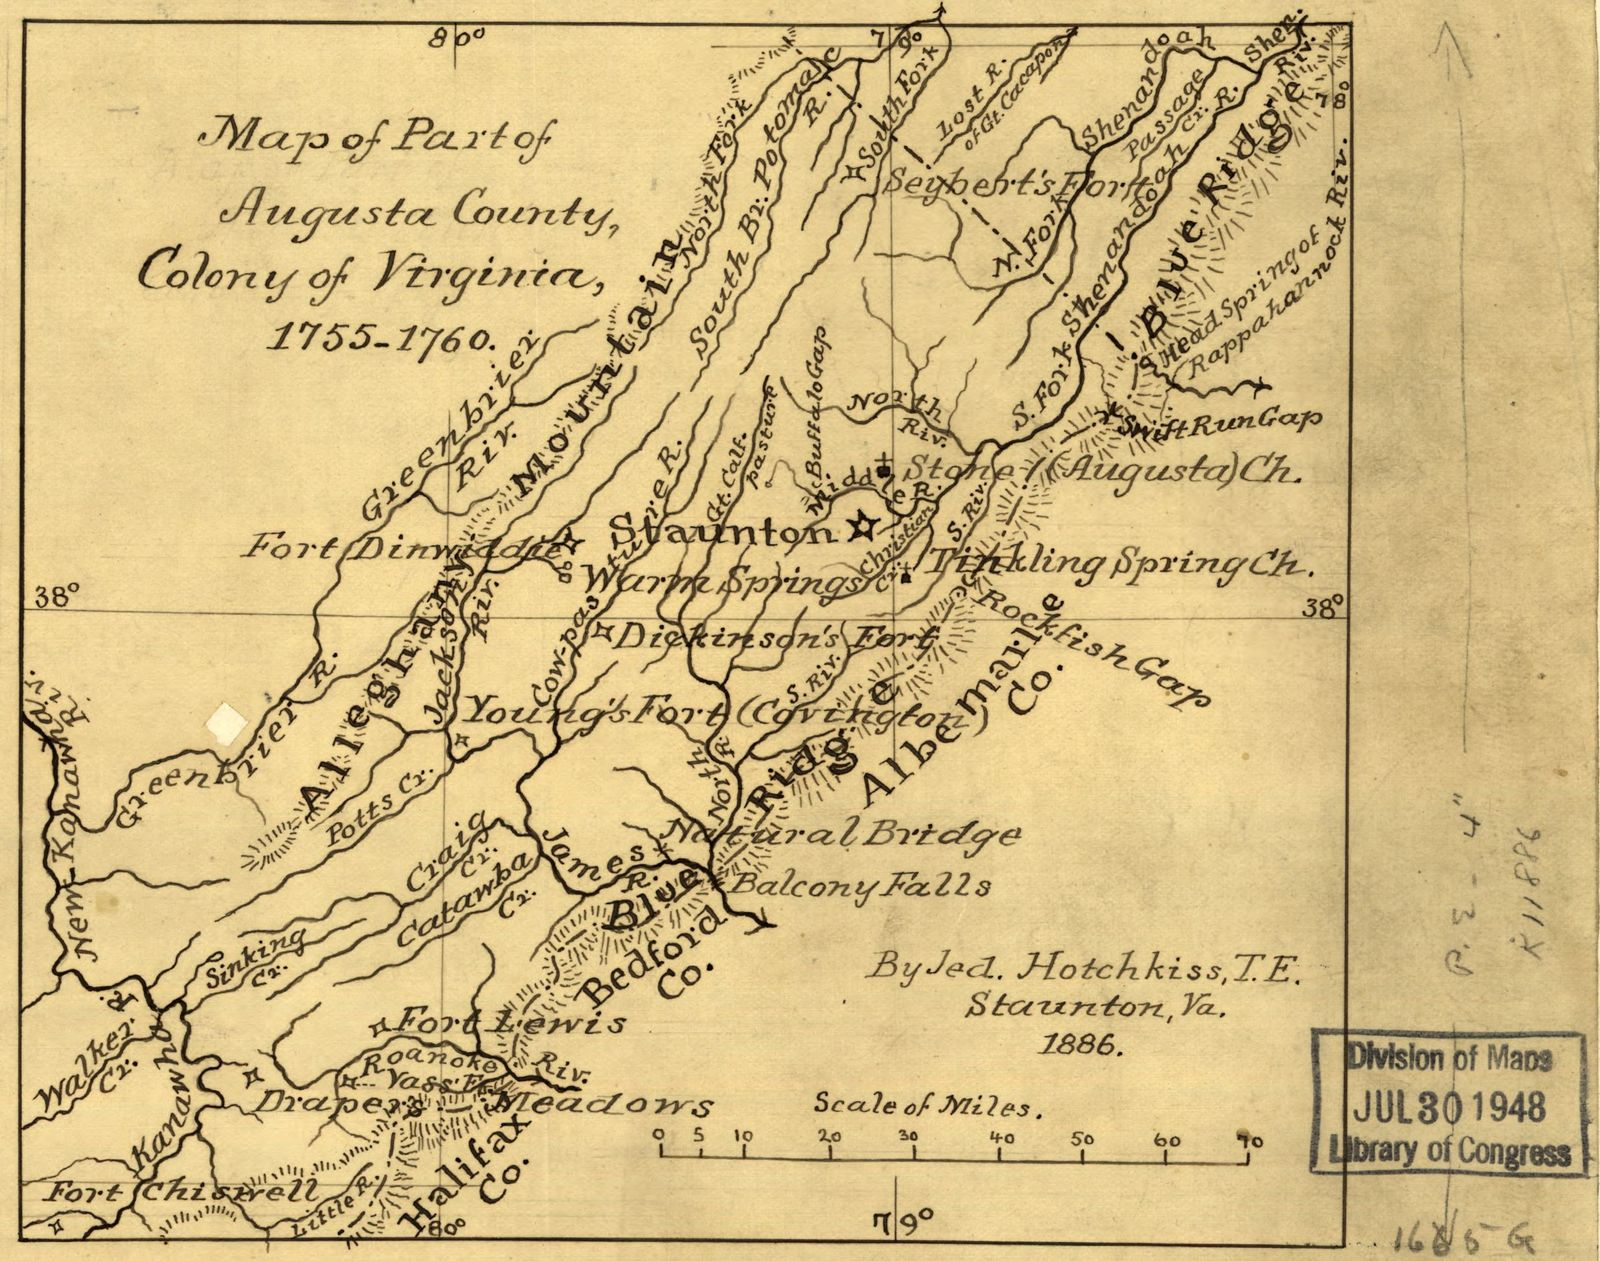 Map Of Part Of Augusta County Colony Of Virginia 1755 1760 Picryl